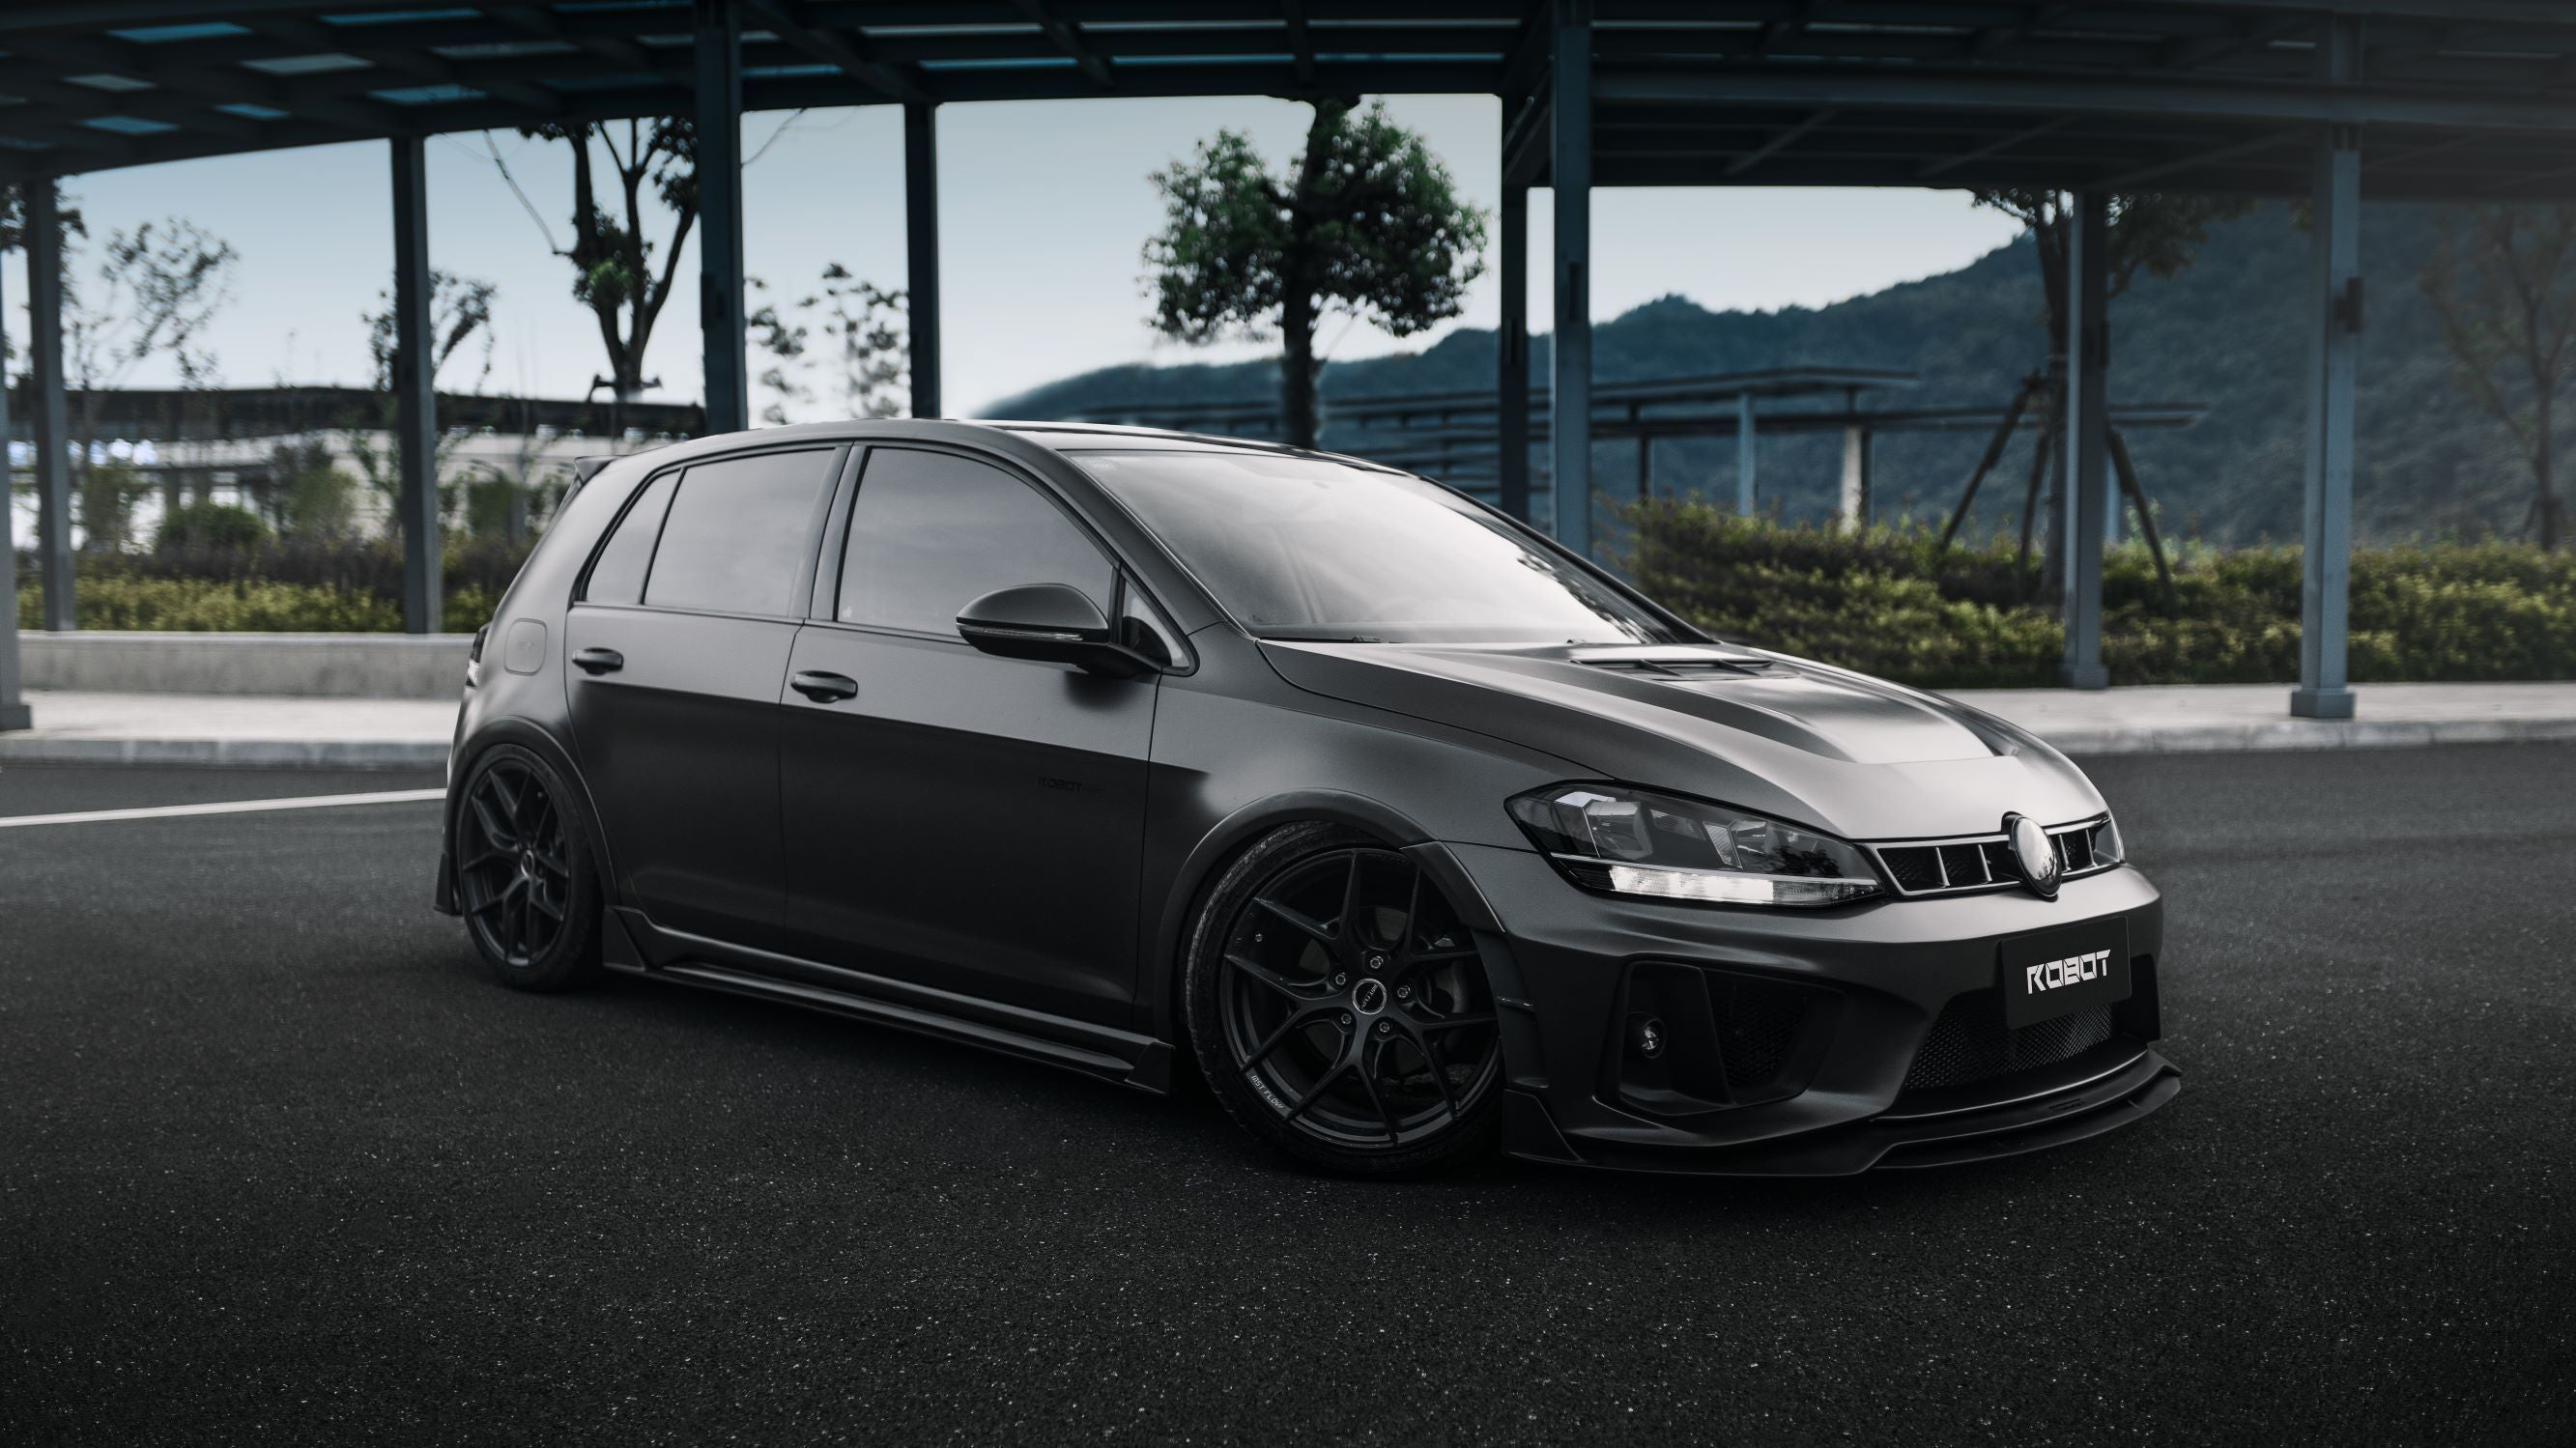 ROBOT CRAFTSMAN Carbon Fiber Baby Widebody Kit For Volkswagen GTI MK7 MK7.5